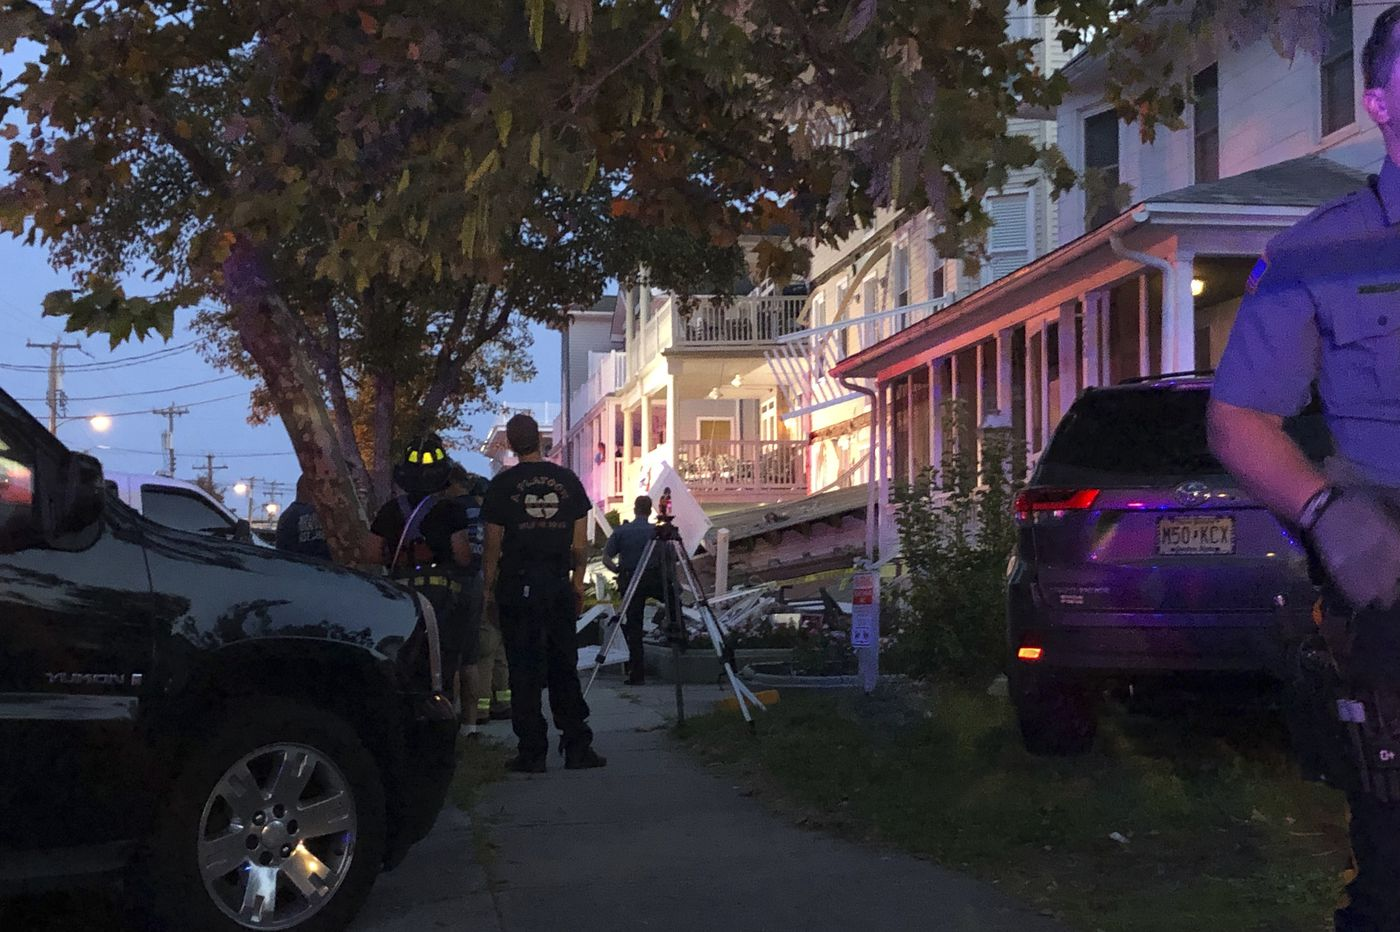 Wildwood deck collapse injures more than 20; one victim flown by medevac